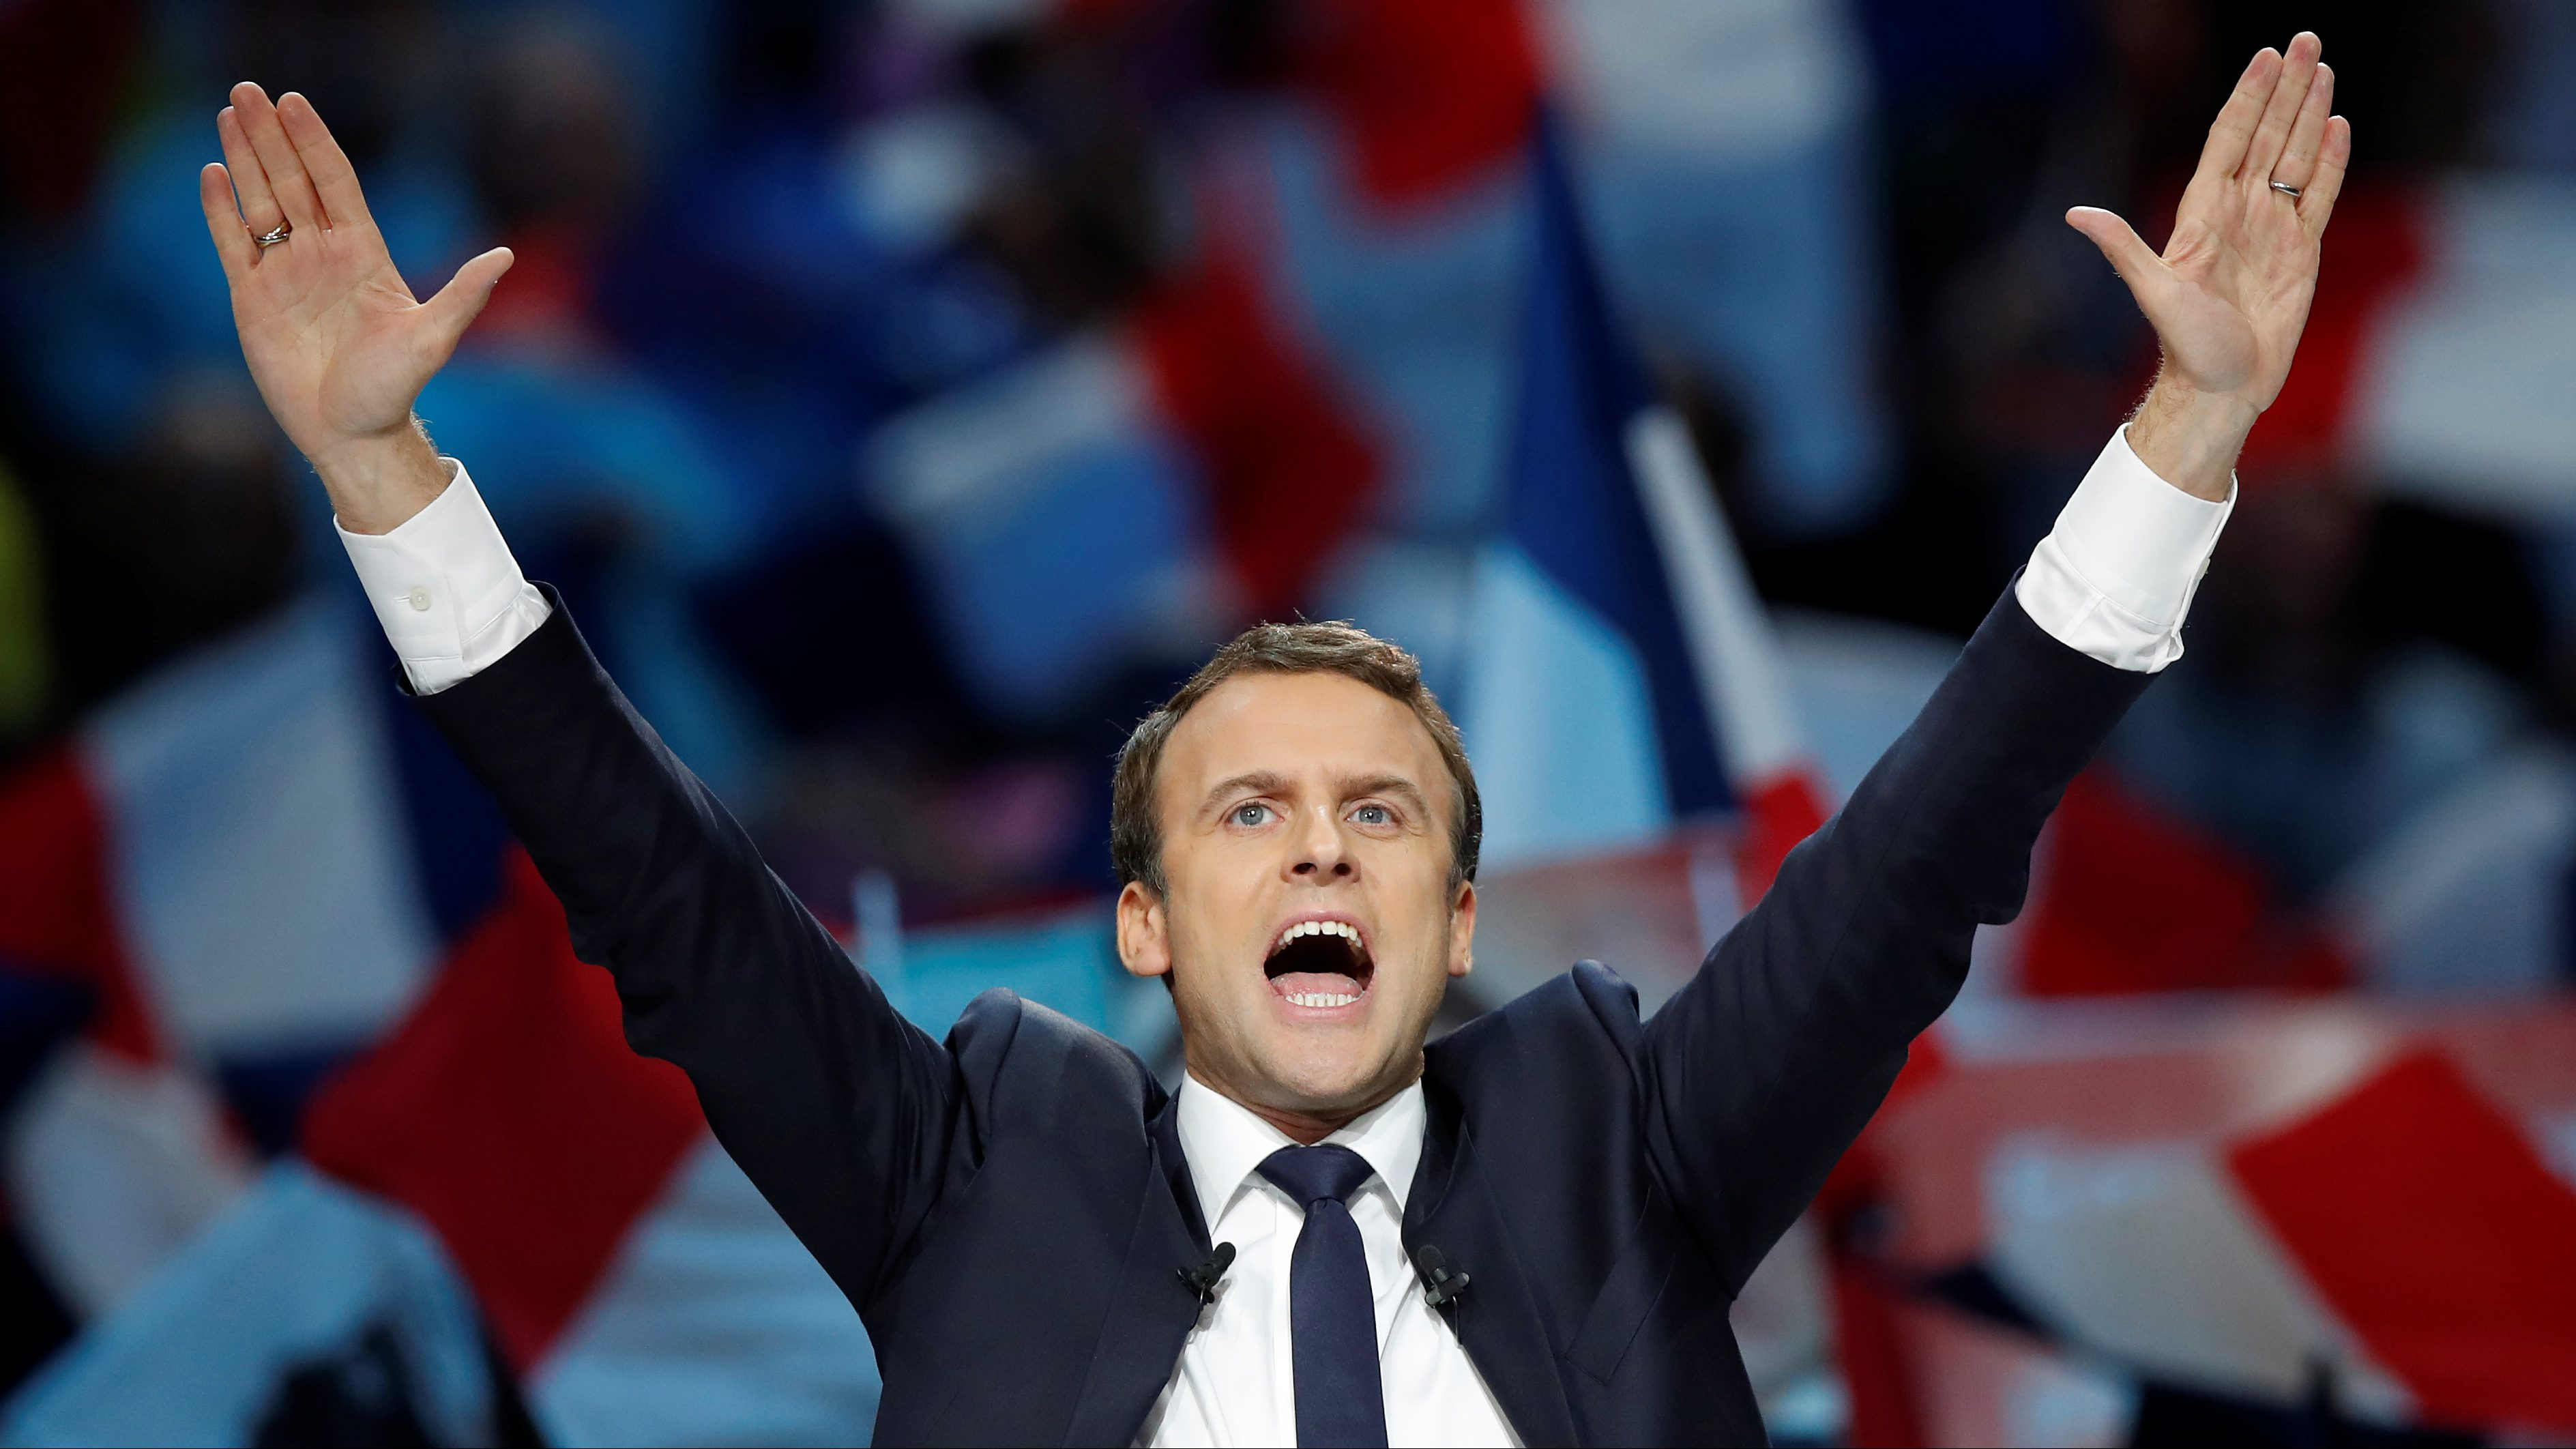 Emmanuel Macron, head of the political movement En Marche !, or Onwards !, and candidate for the 2017 French presidential election, attends a campaign political rally in Paris